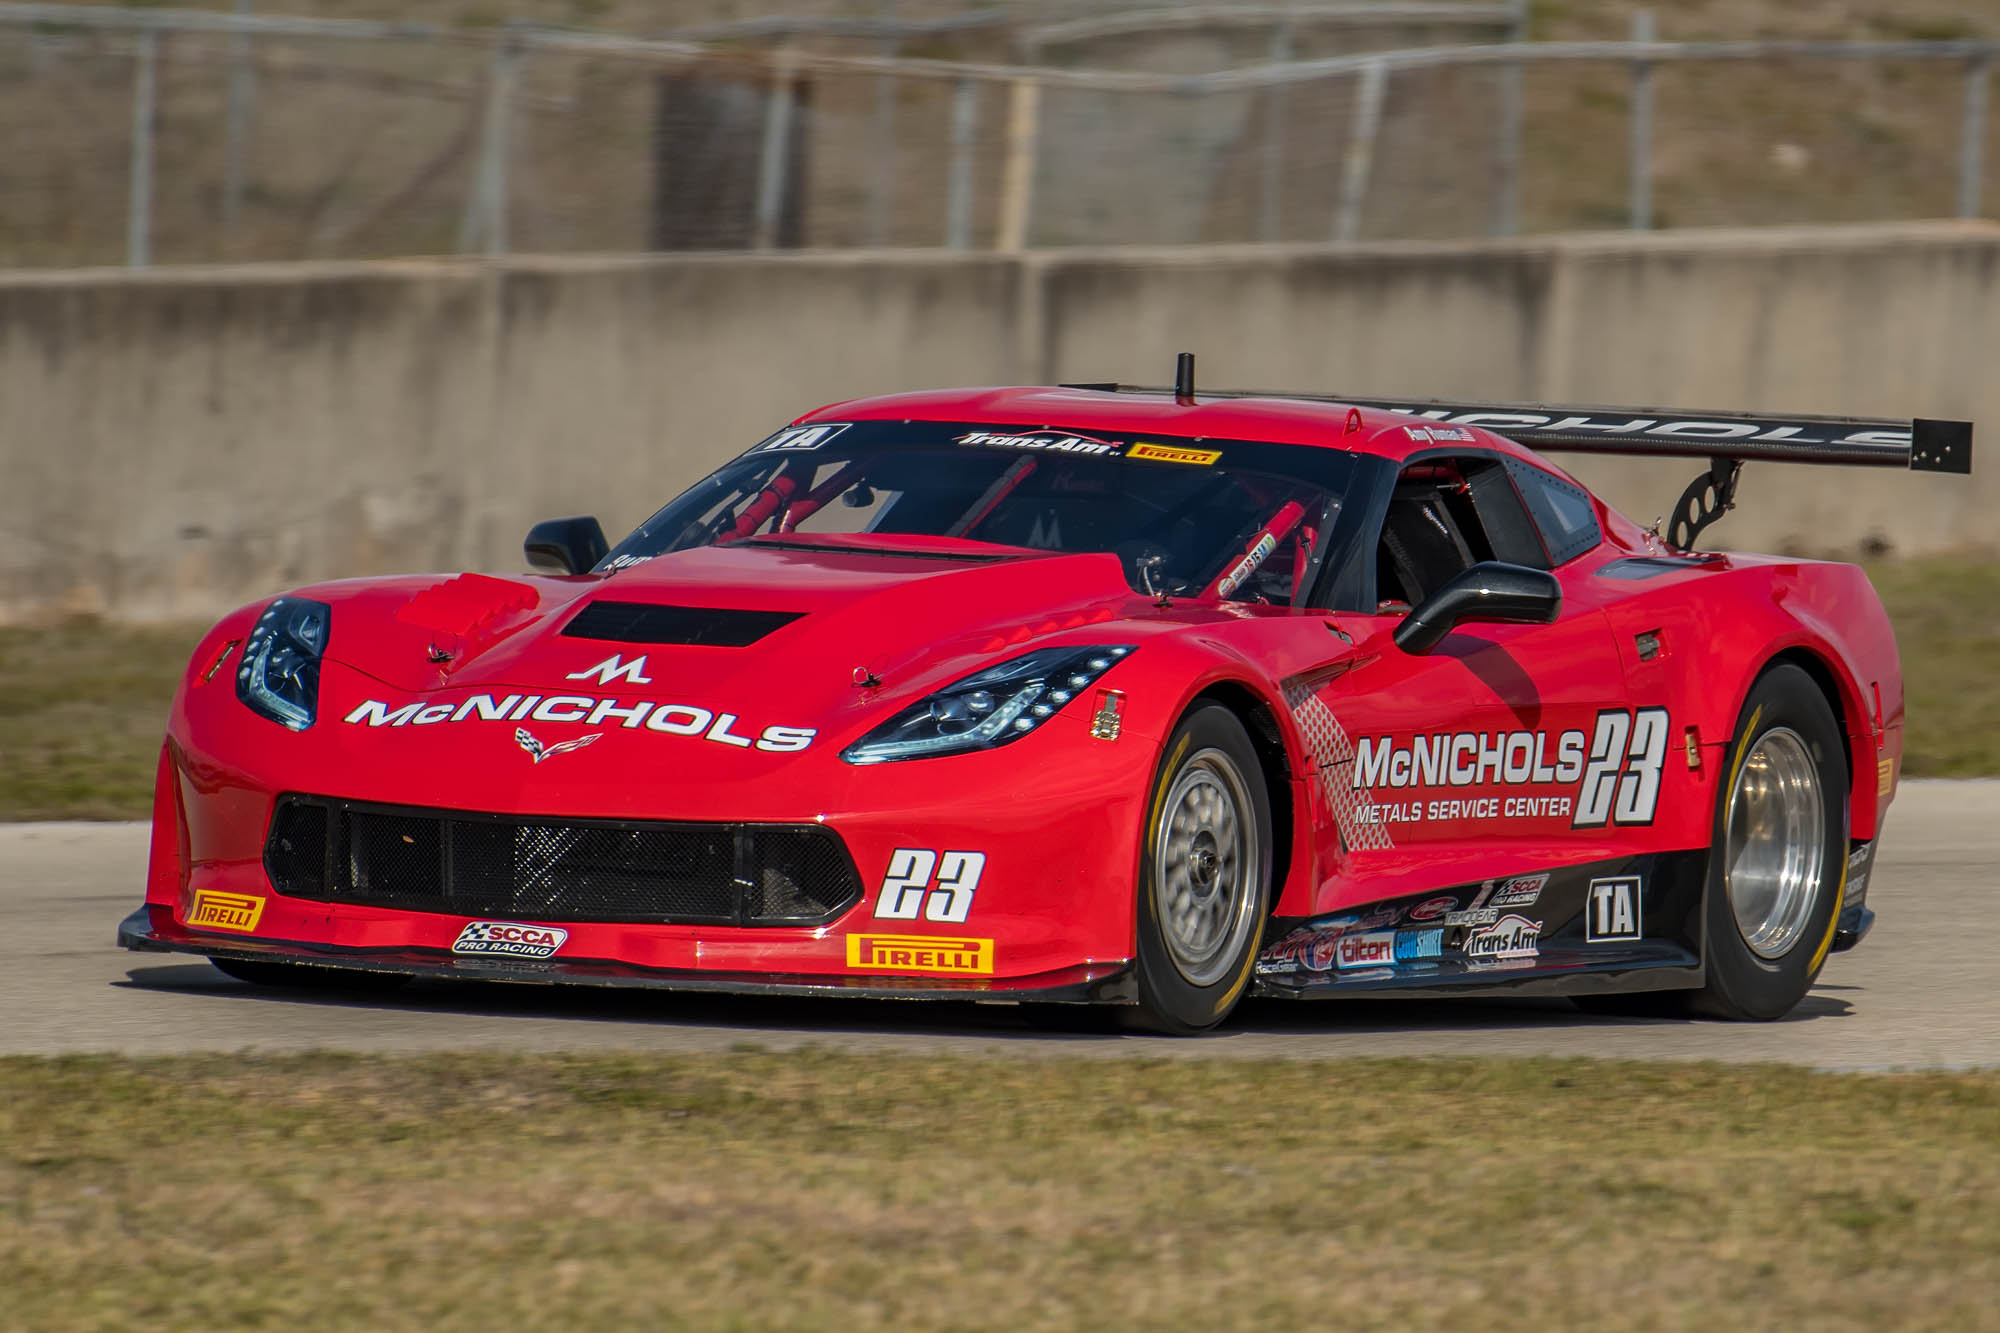 Top 5 Finish for Ruman at Trans Am Sebring Opener - RUMAN RACING